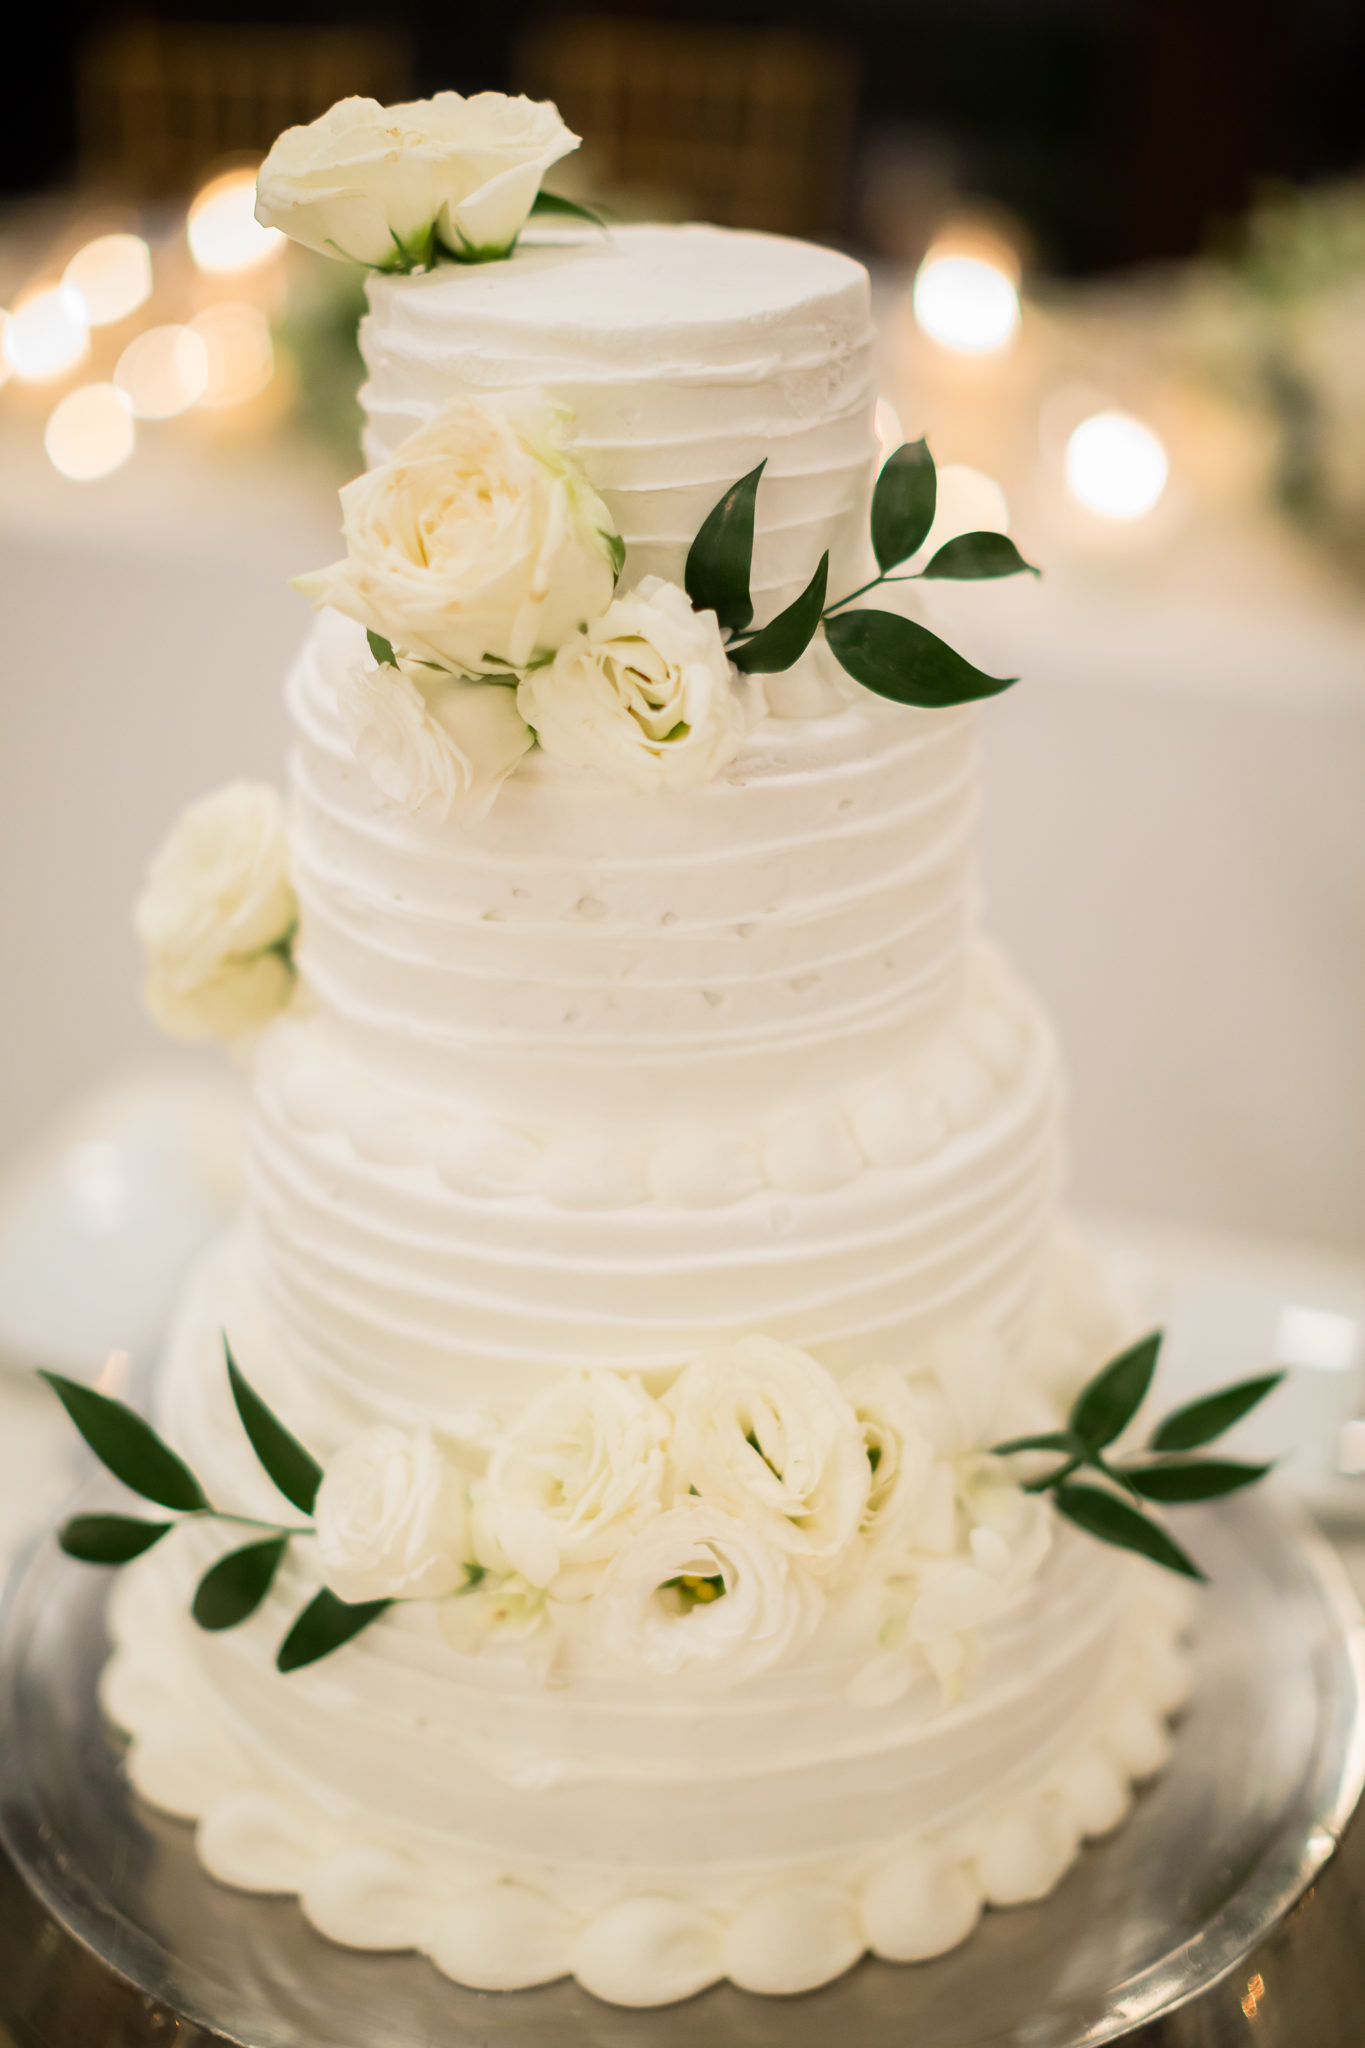 simple white wedding cakes - photo by DarinImages http://ruffledblog.com/this-bride-is-sharing-all-you-need-to-know-about-a-destination-wedding-in-thailand